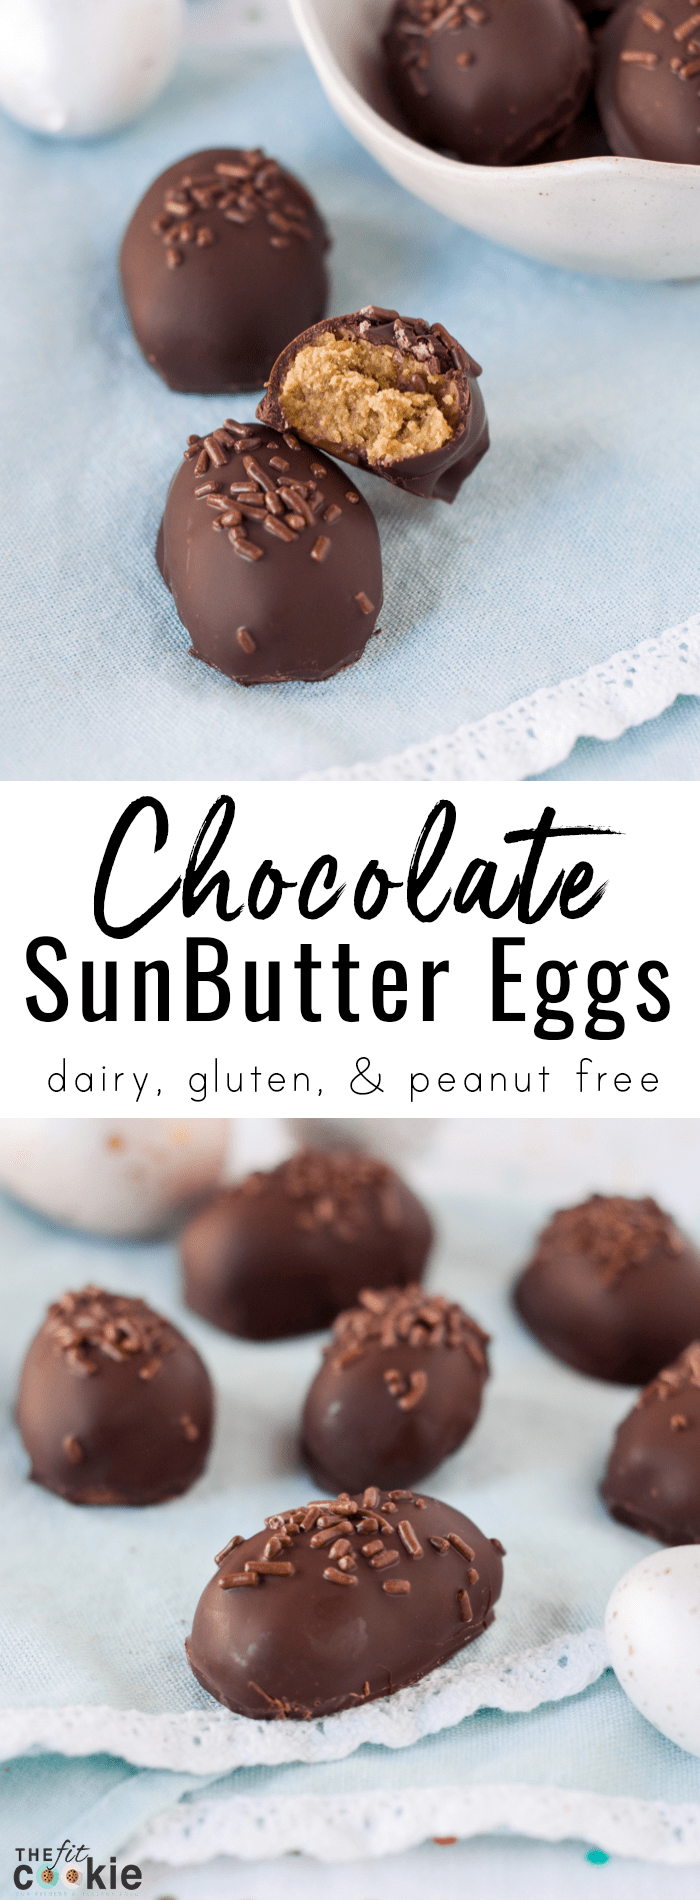 Make some homemade allergy friendly Easter candy that is peanut free, gluten free, and dairy free with this delicious Chocolate SunButter Egg recipe! They are soy free and vegan too - @TheFitCookie #peanutfree #Easter #glutenfree #vegan